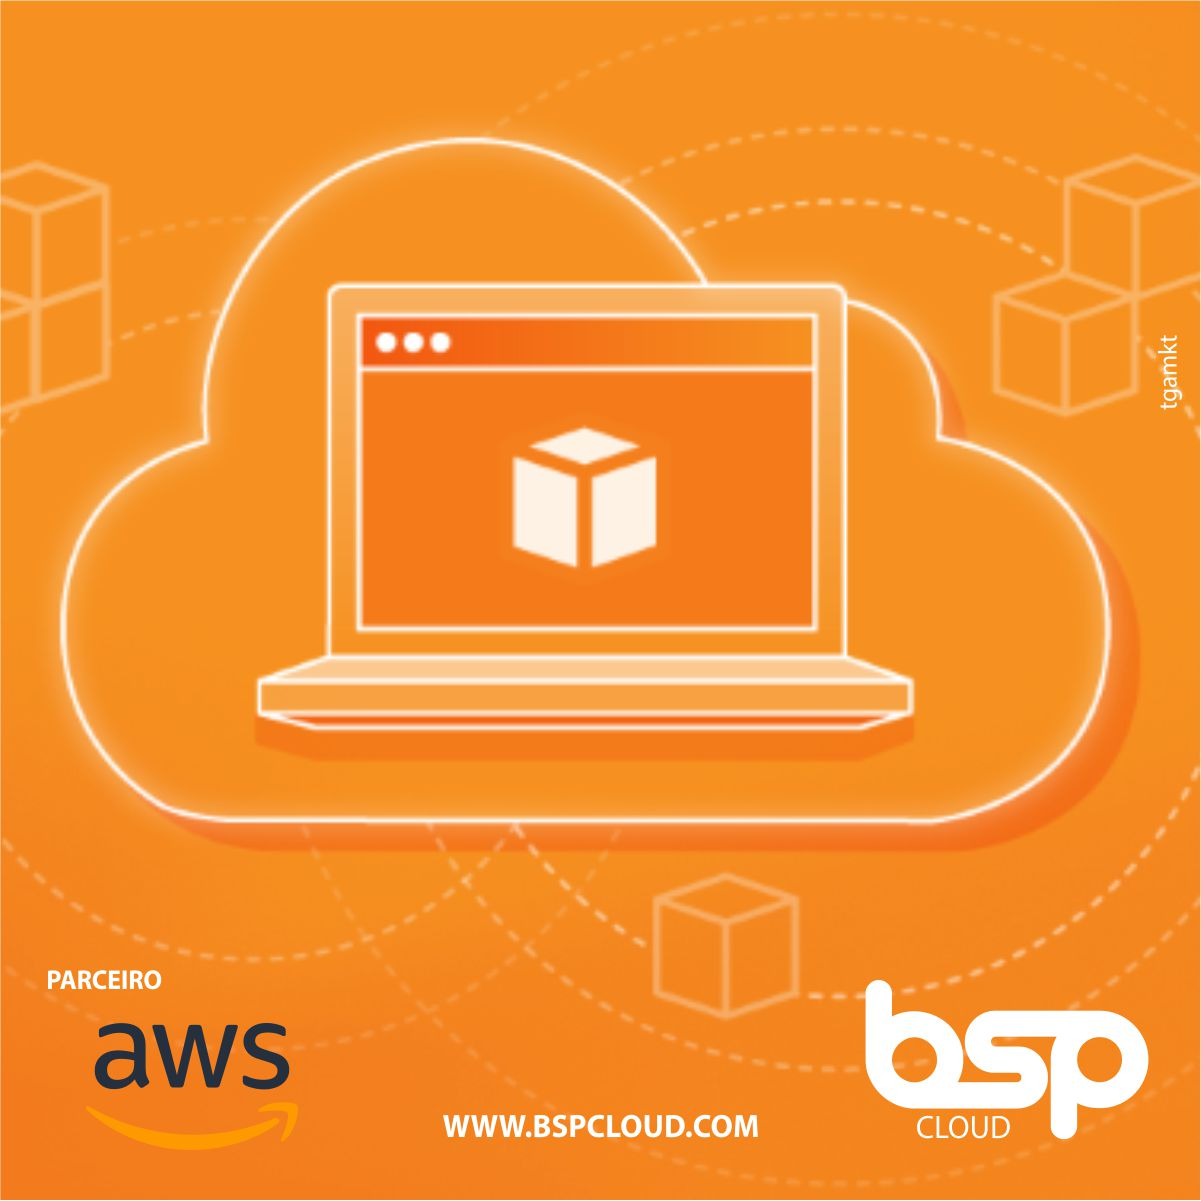 Aws Cloud Pareceiro Bsp Cloud